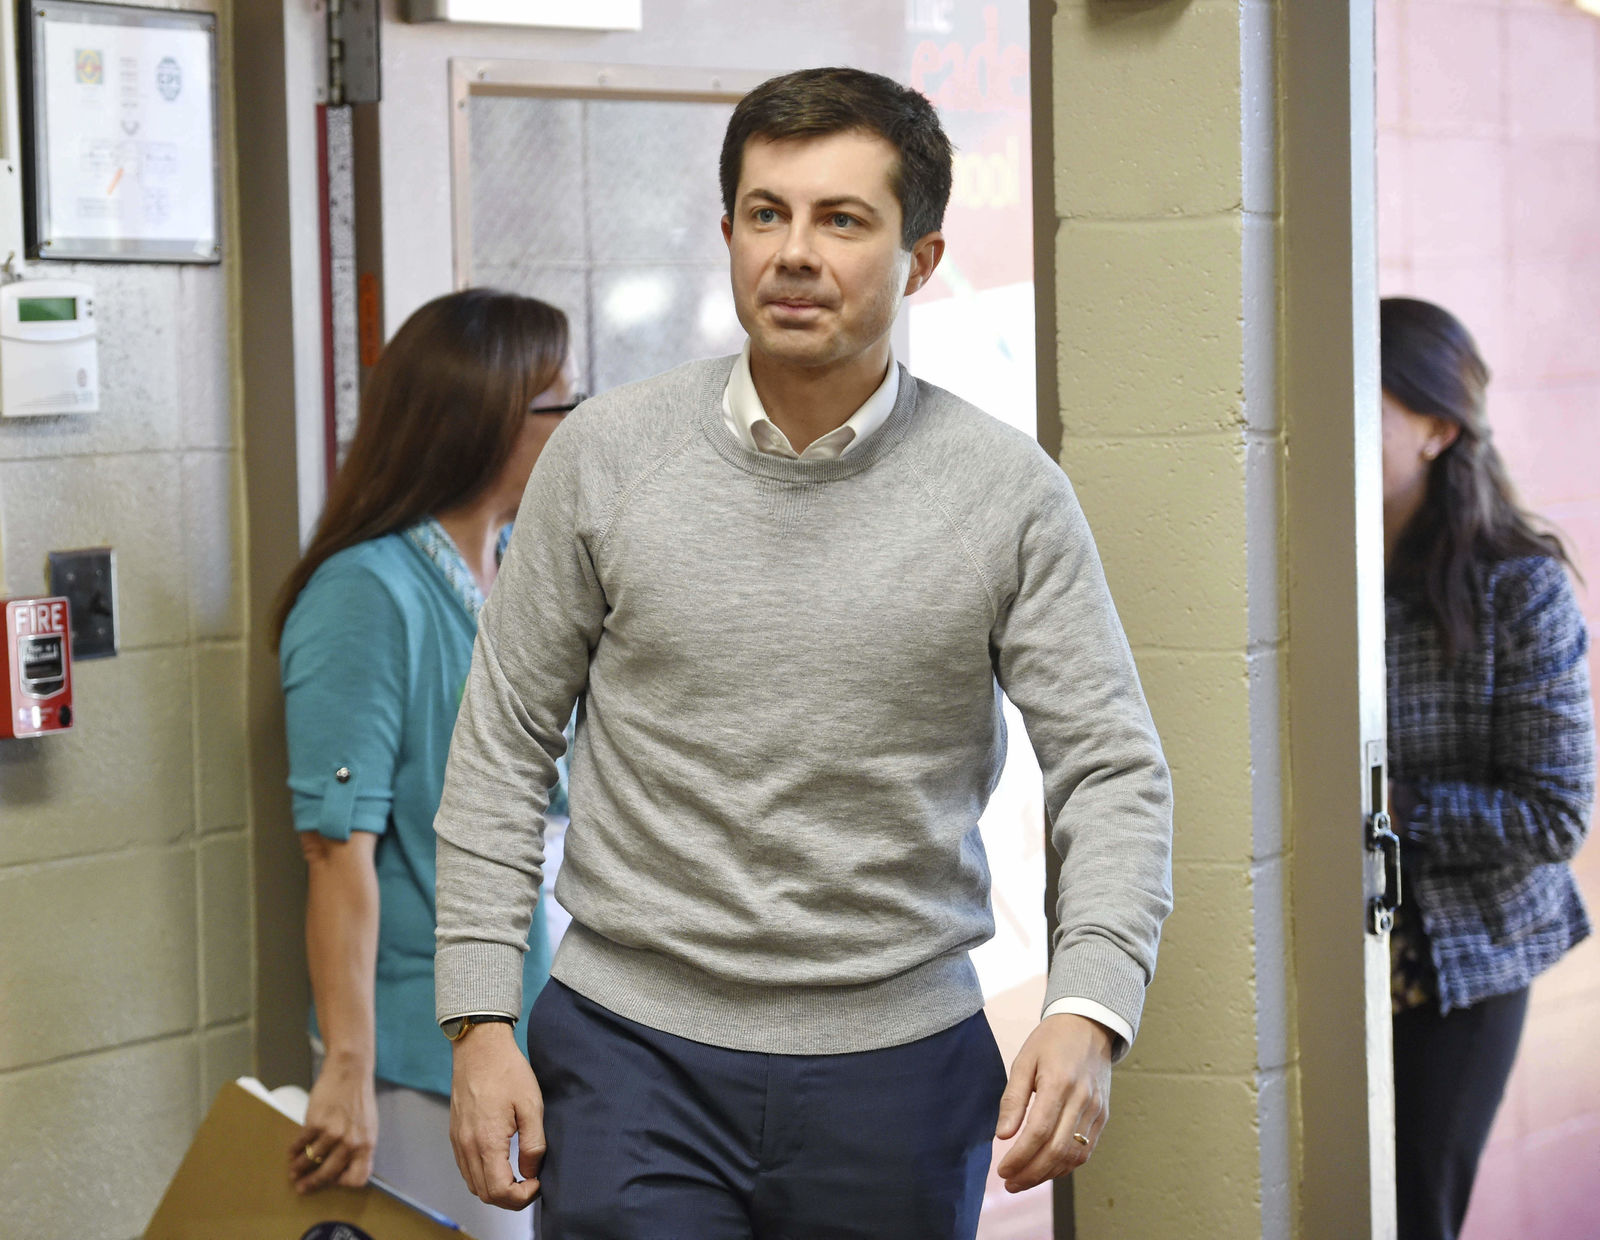 FILE - In this March 23, 2019, file photo, South Bend Mayor Pete Buttigieg arrives to speak about his presidential run during the Democratic monthly breakfast at the Circle of Friends Community Center in Greenville, S.C. (AP Photo/Richard Shiro, File)